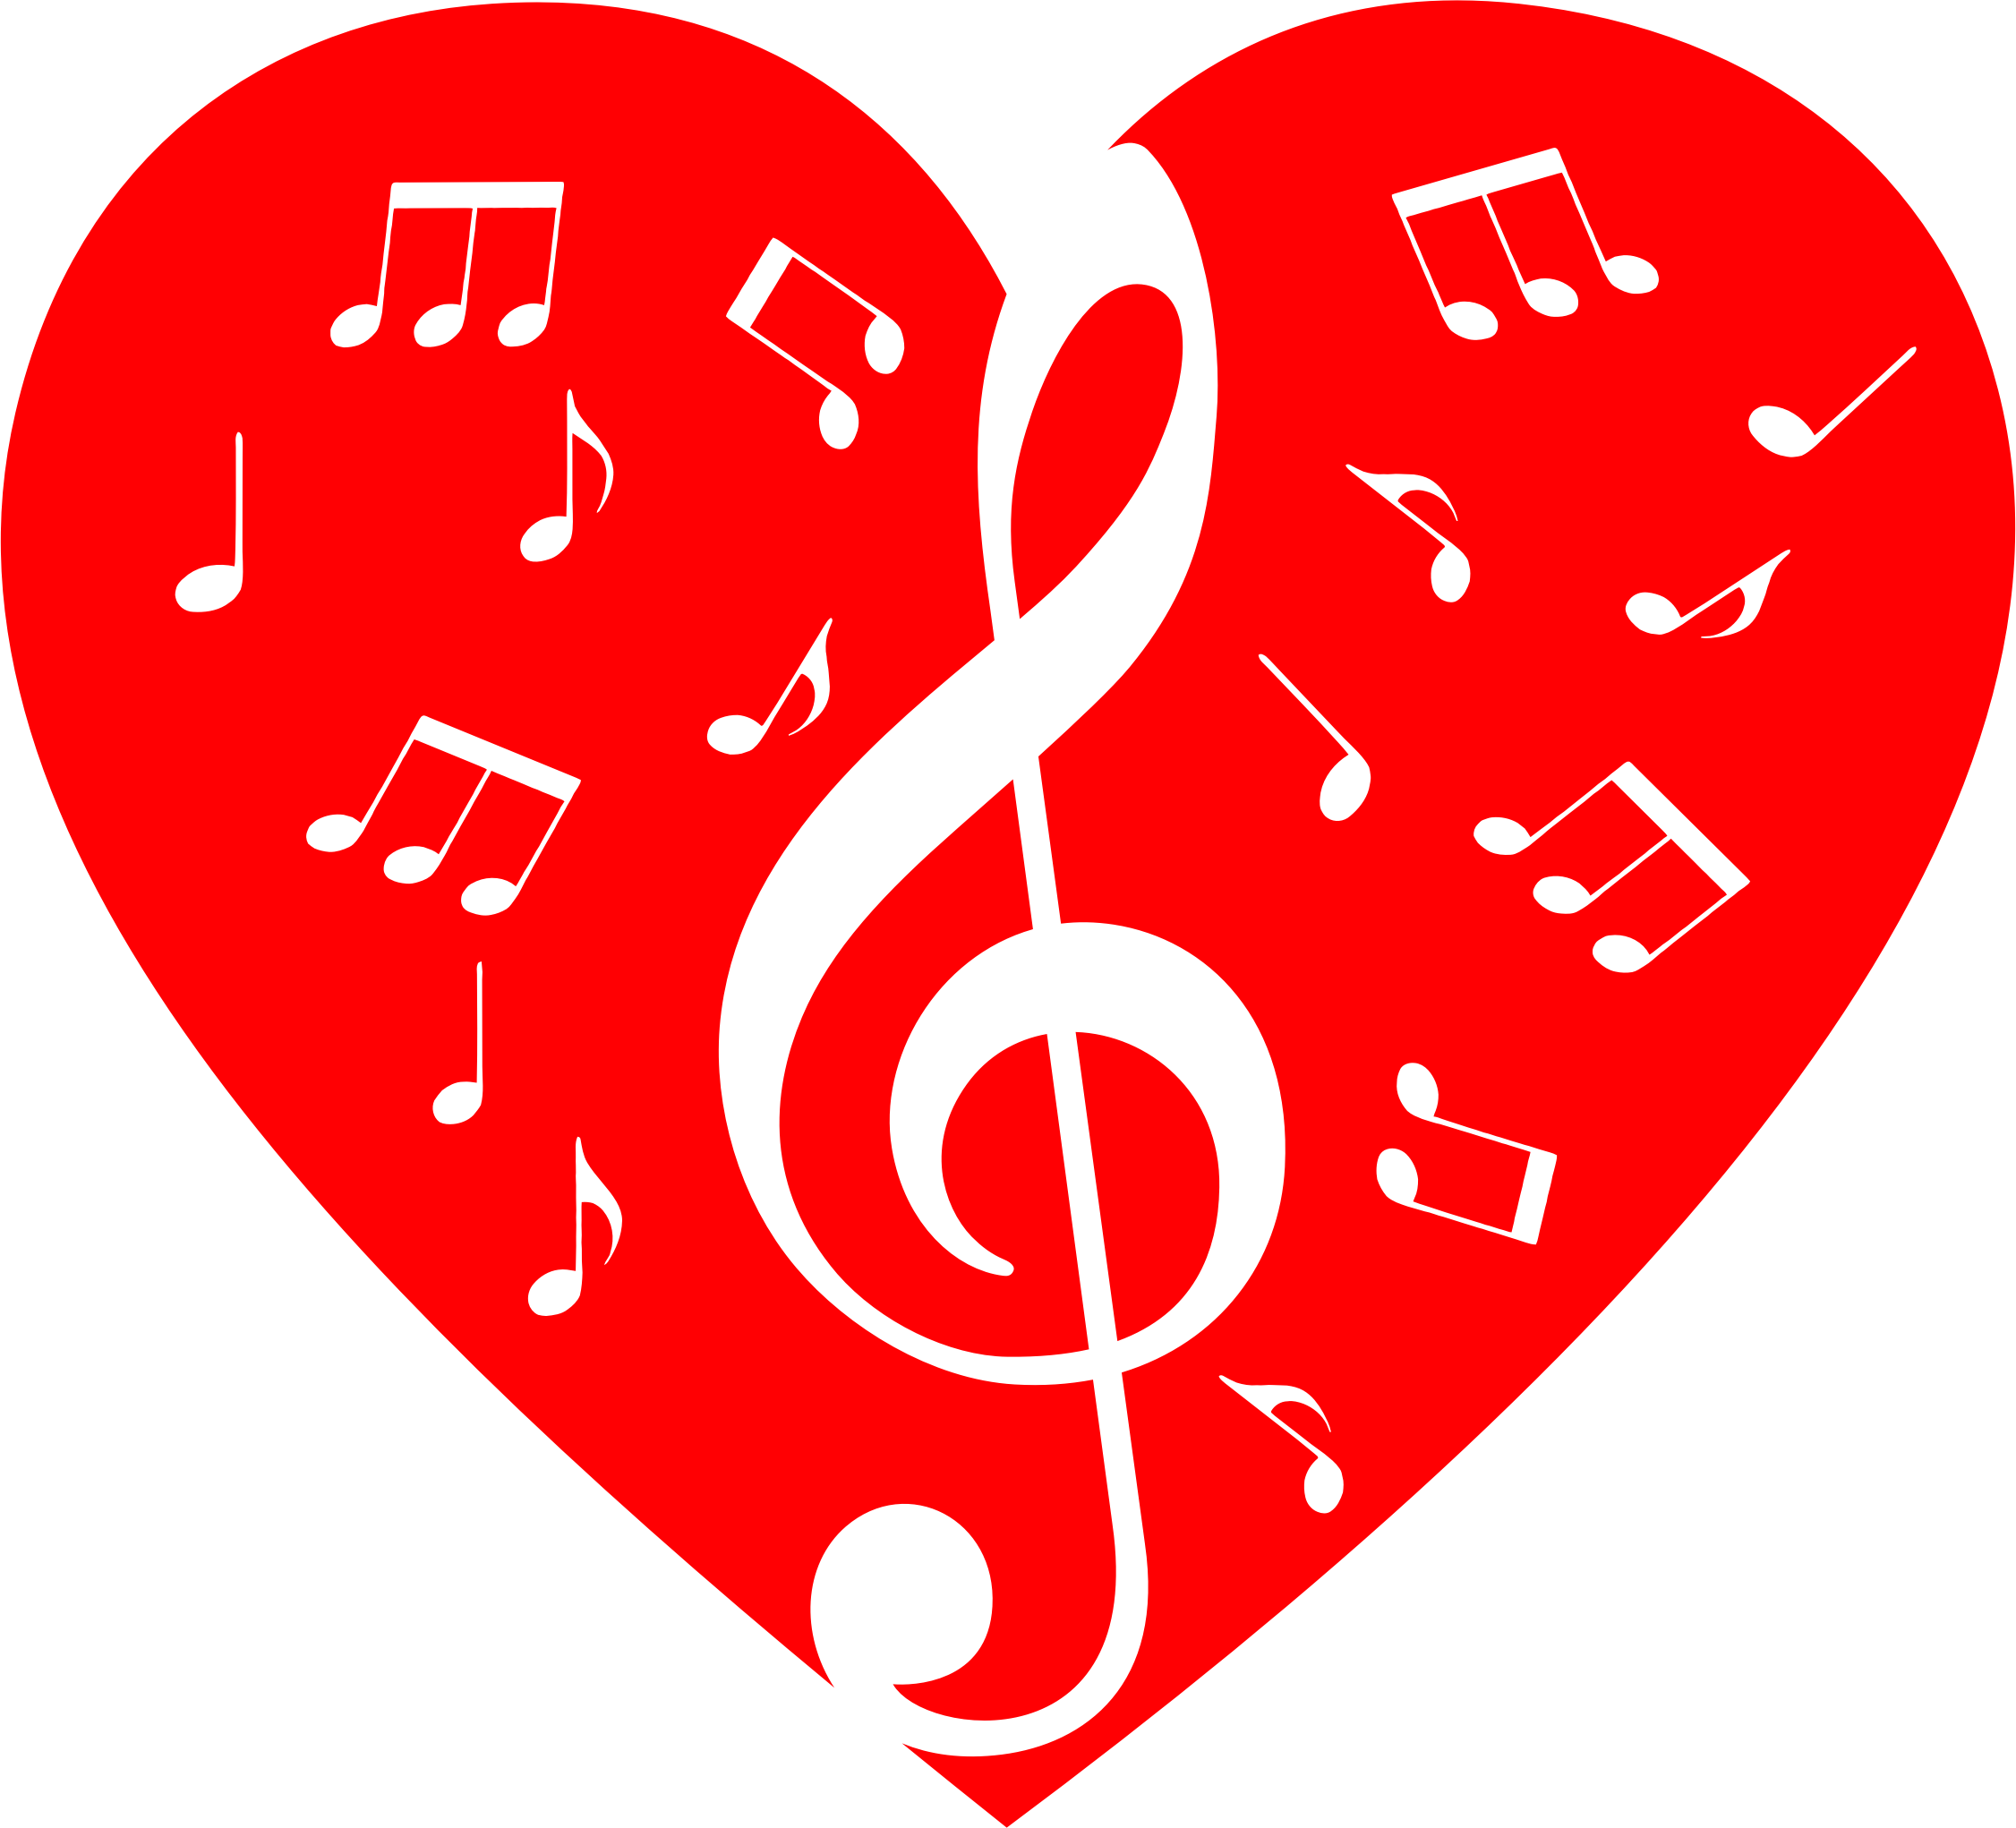 Musical Heart 3 by GDJ